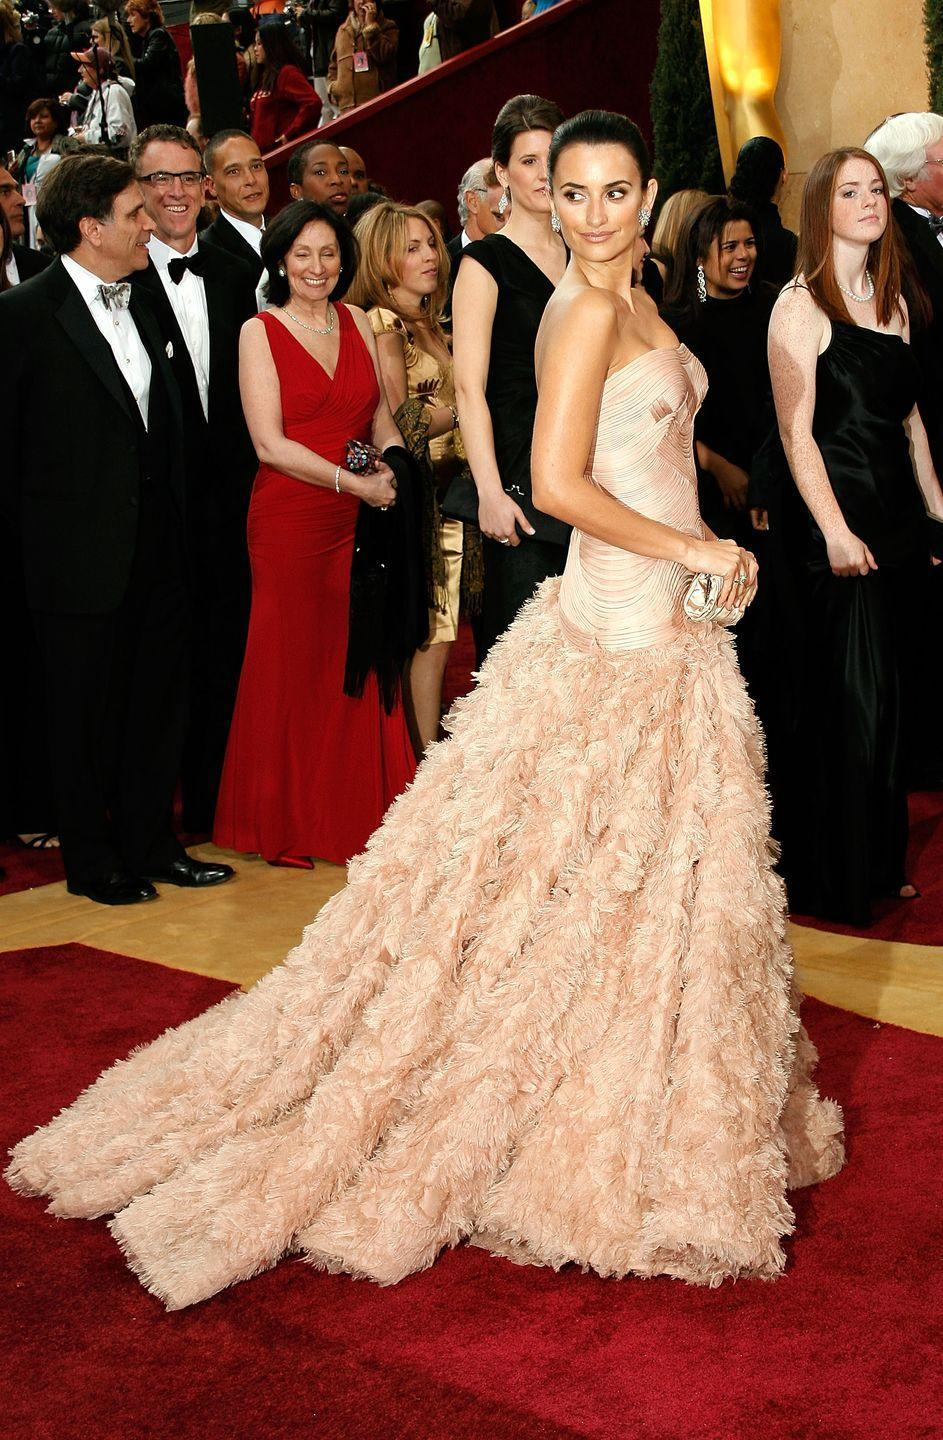 <p>The actress brought major volume to the red carpet in a blush pink Versace gown with a ruffled train and tight-fitting bodice. She finished off the look with a sleek bun, statement stud earrings, and a small clutch. </p>